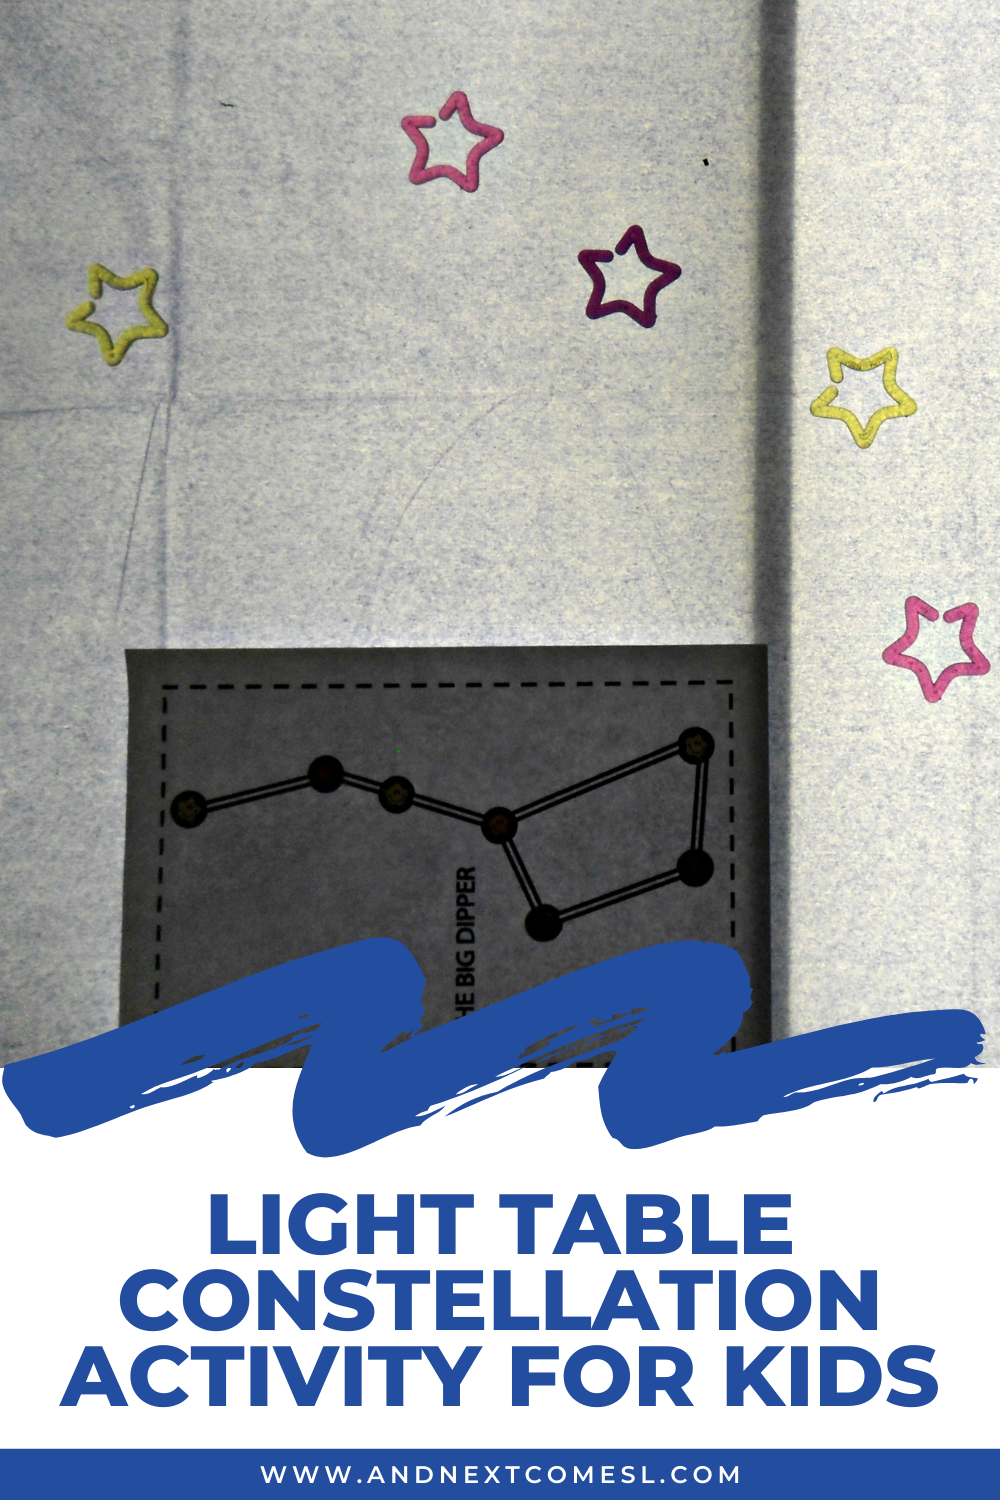 Kids of all ages will love learning about constellations with this light table constellation activity